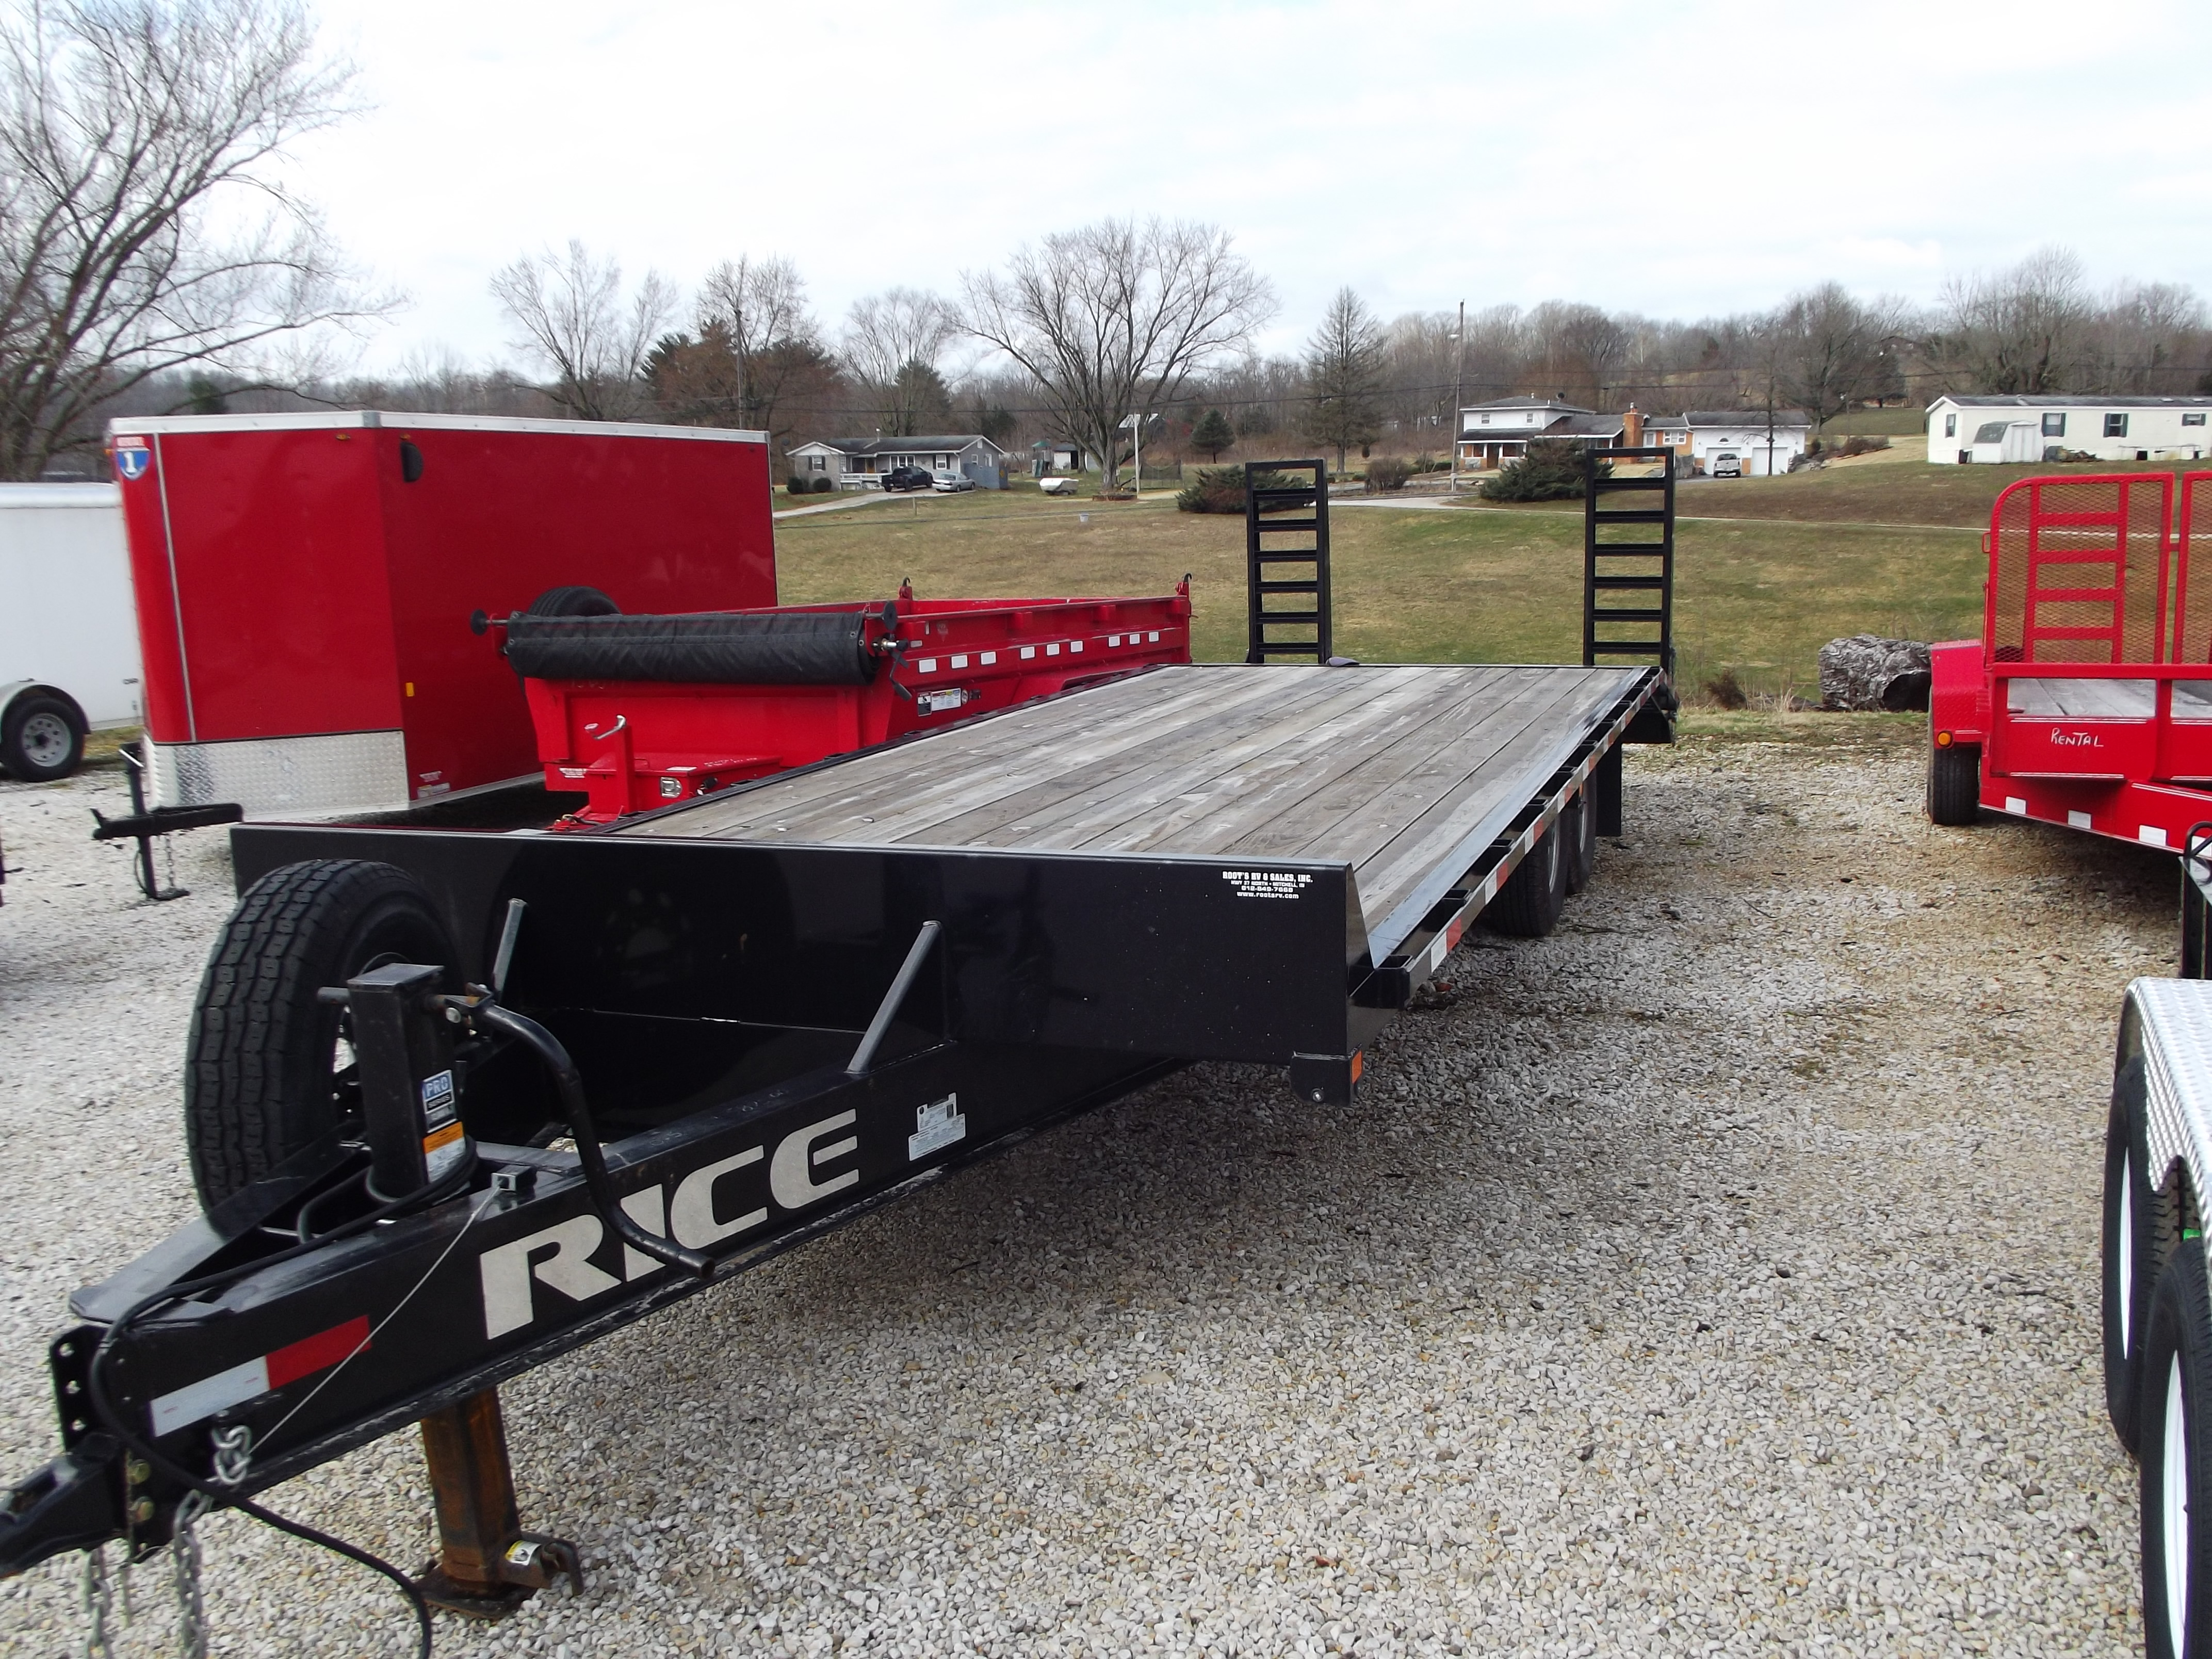 2018 Look 18x8 5 Look Trailer Rental In Mitchell In Outdoorsy - Boot Trailer